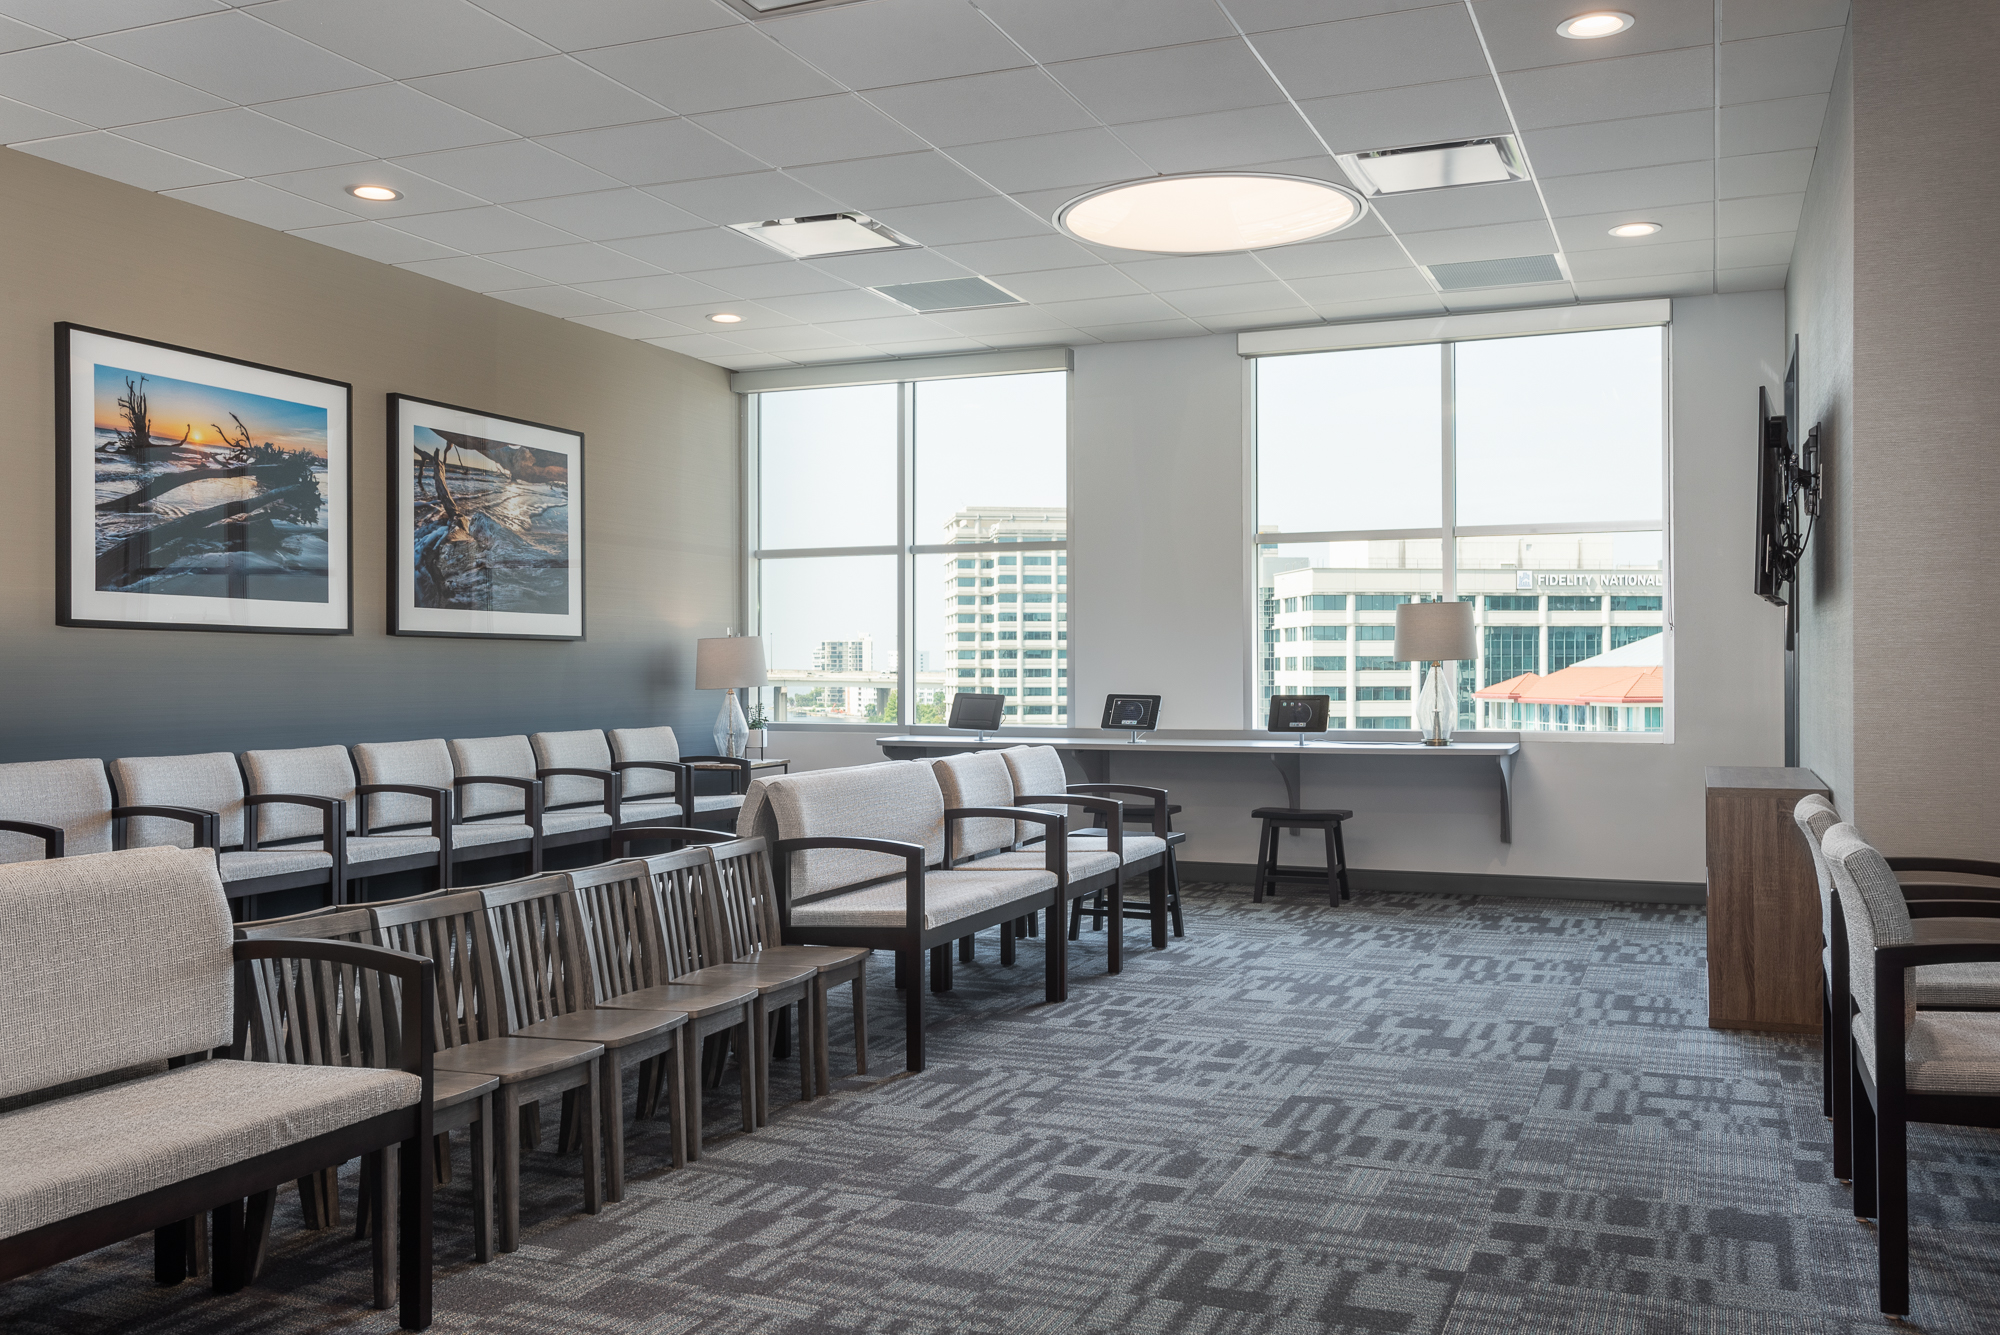 Micamy Design Studio_Interior Design_Pediatric Eye Consultants_North Florida_Riverside_Ophthalmology_Strabismus_Office__Renovation_Patcraft_Seating_Waiting_Lounge_St Johns River.jpg